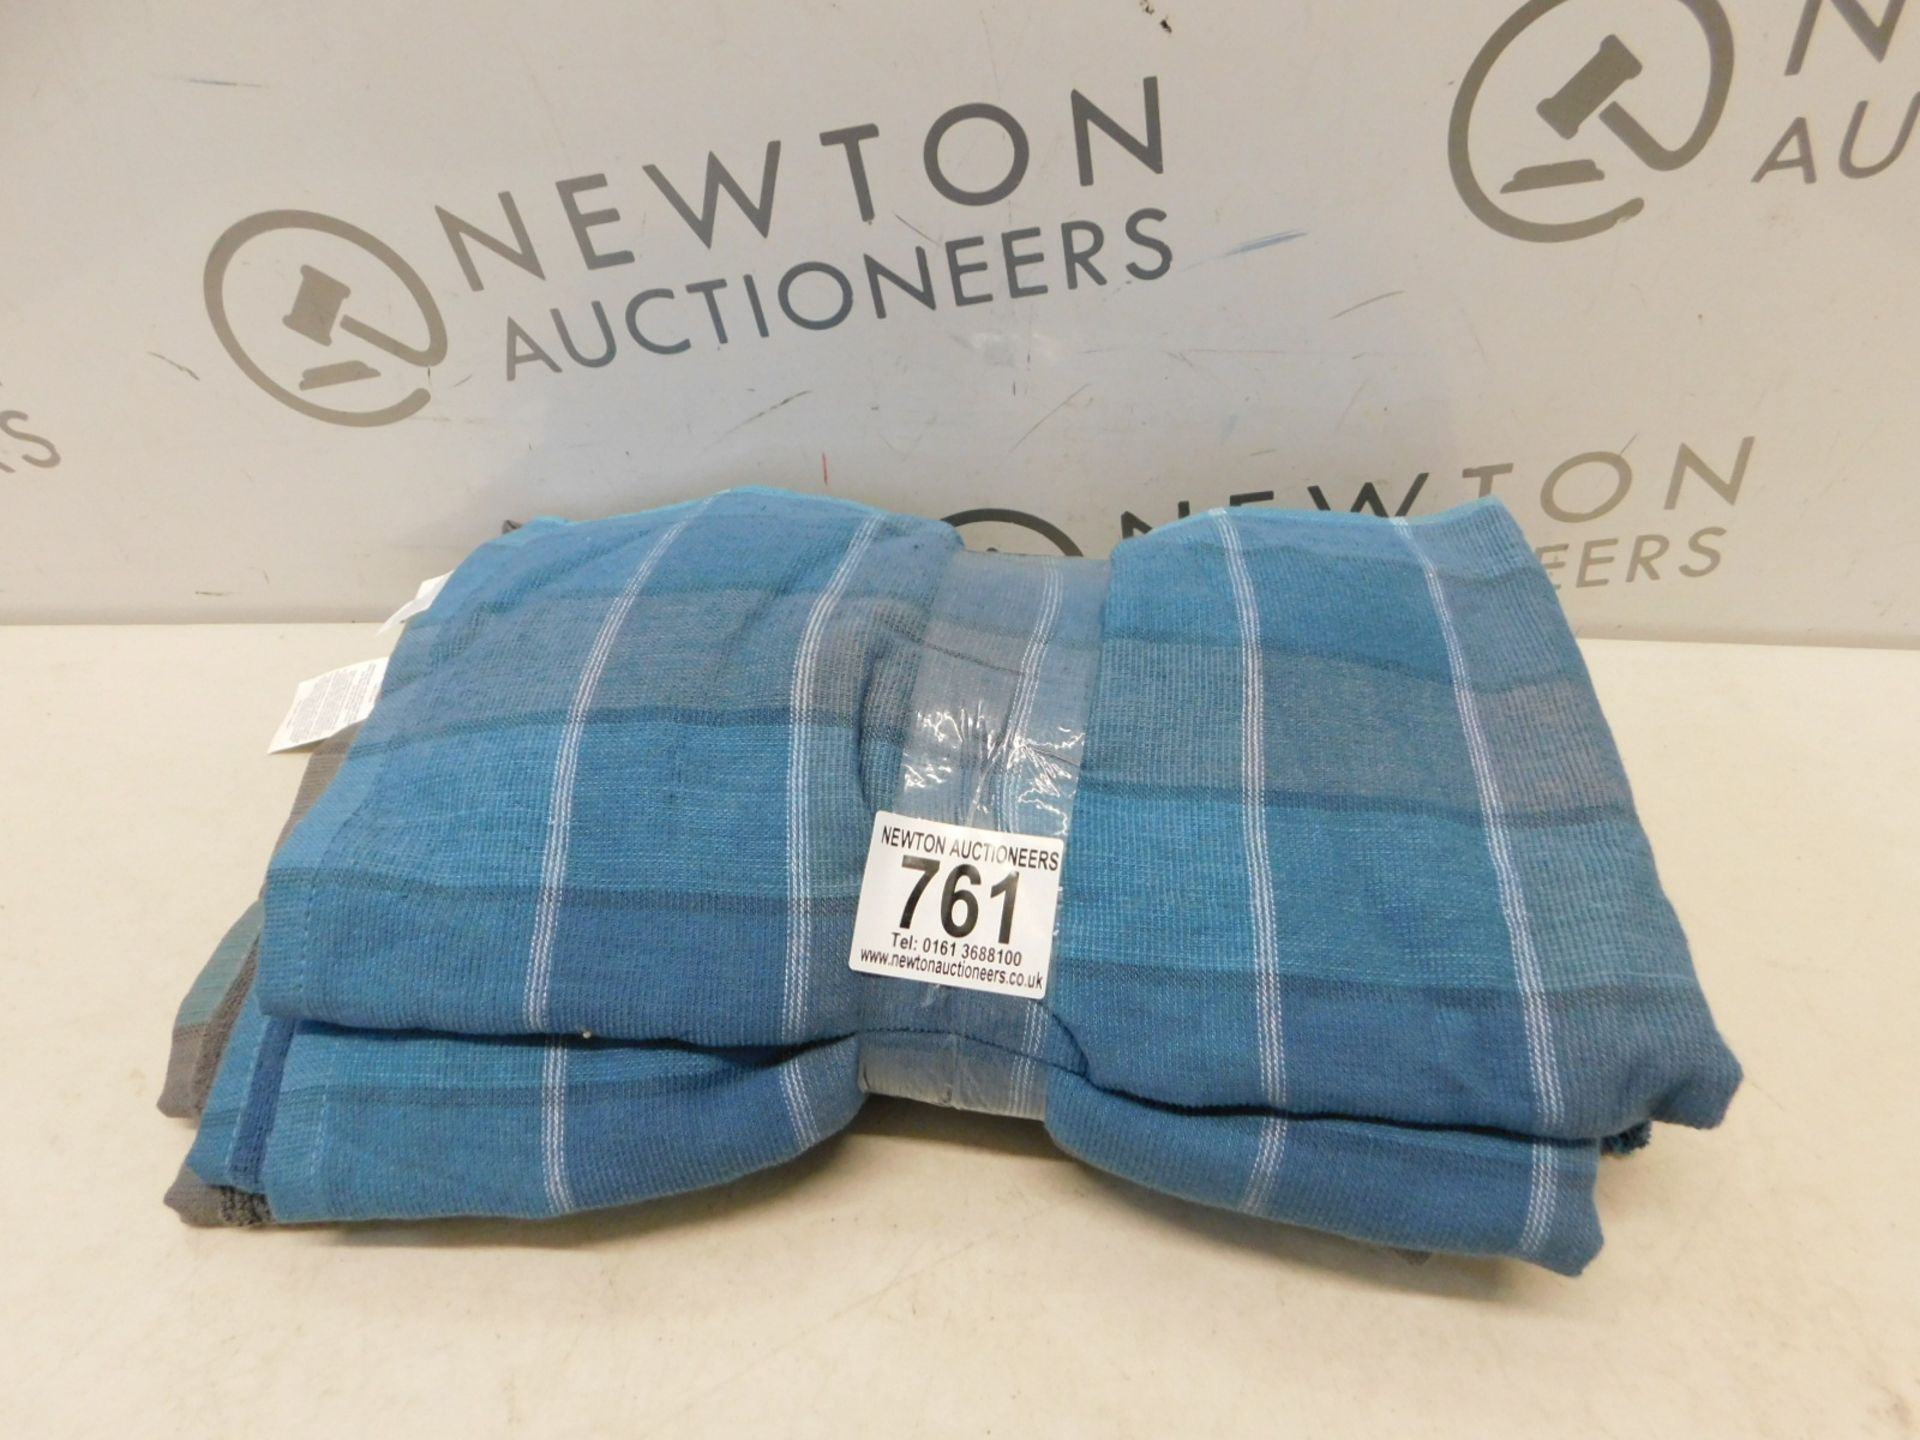 Lot 761 - 1 SET OF 6 COMMERCIAL KITCHEN TOWELS RRP £24.99